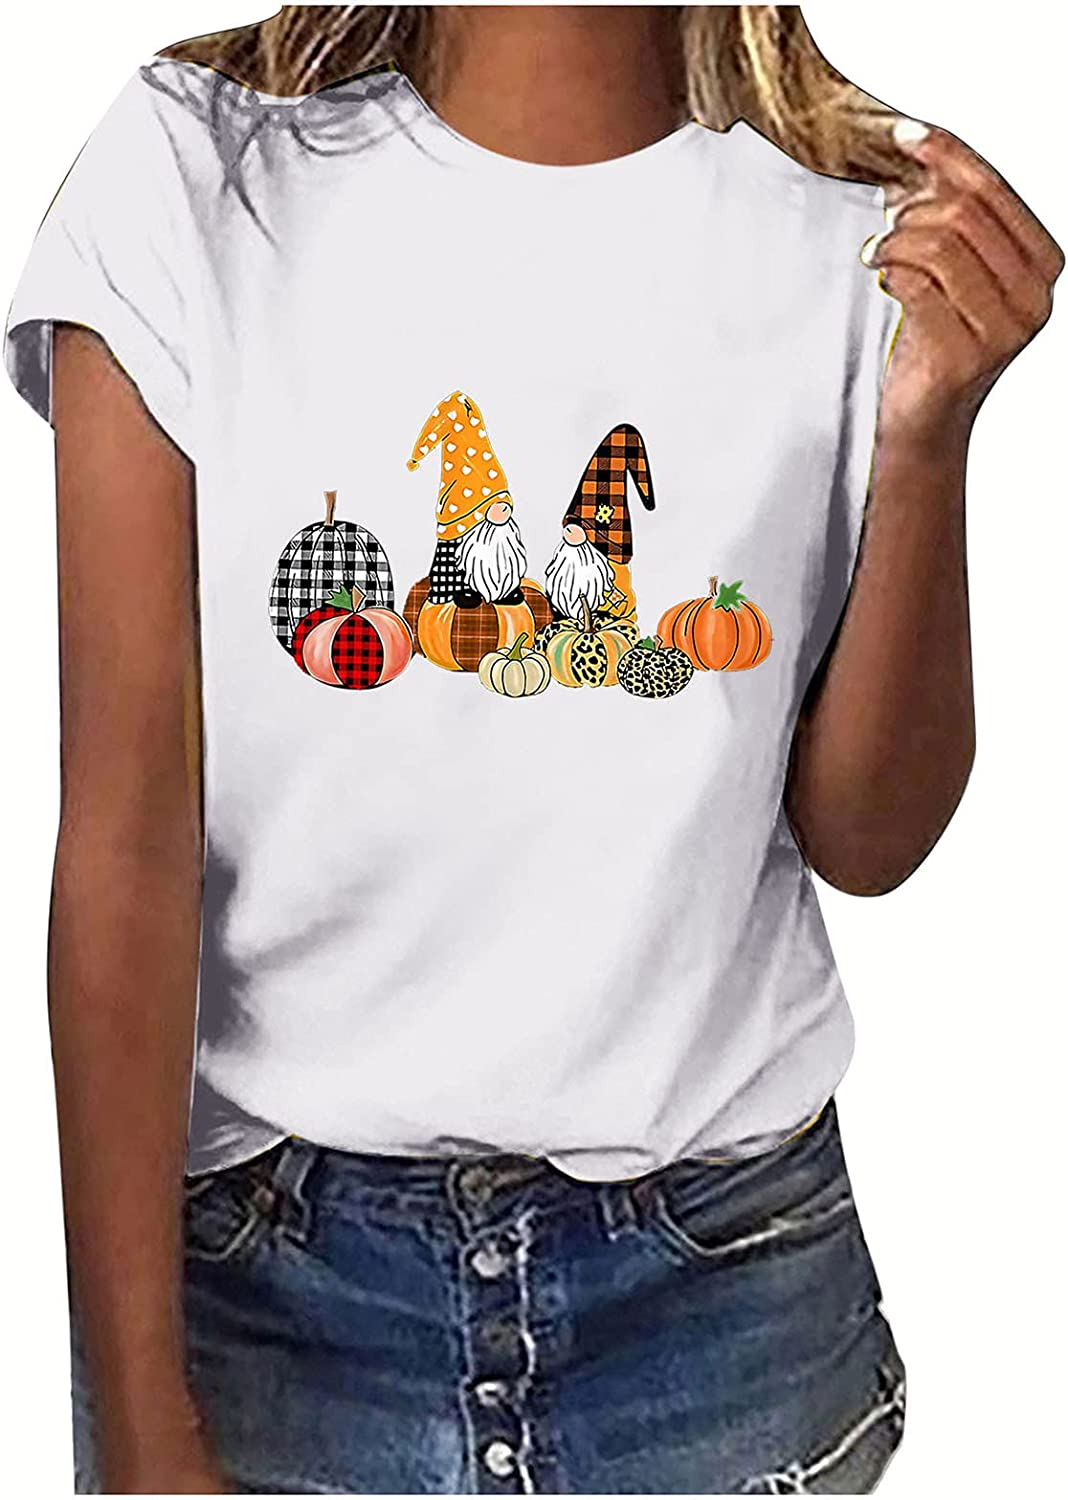 AODONG Women Halloween Shirts, Women's Halloween Gnomes Printed Tops Funny Casual Graphic T-Shirts Loose Tunic Tees